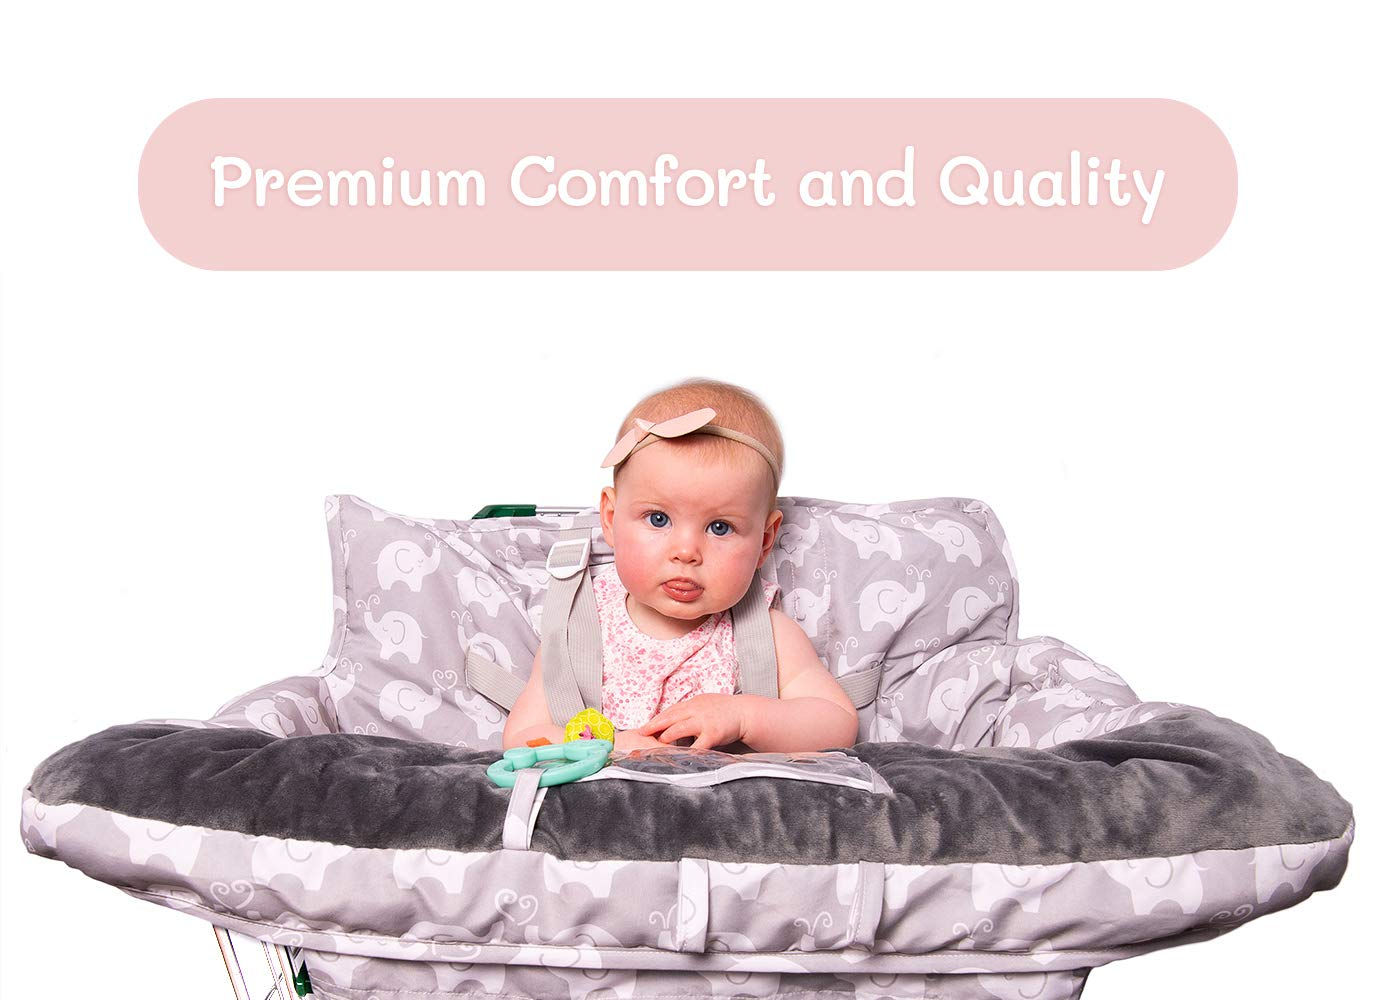 2-in-1 Baby Shopping Cart Cover and High Chair Protector - Germ-Protecting Seat Covers for Grocery Carts, Restaurant High-Chairs - Universal, Soft, Safe - Travel Gear for Babies, Infants by Tooshin Baby (Image #3)